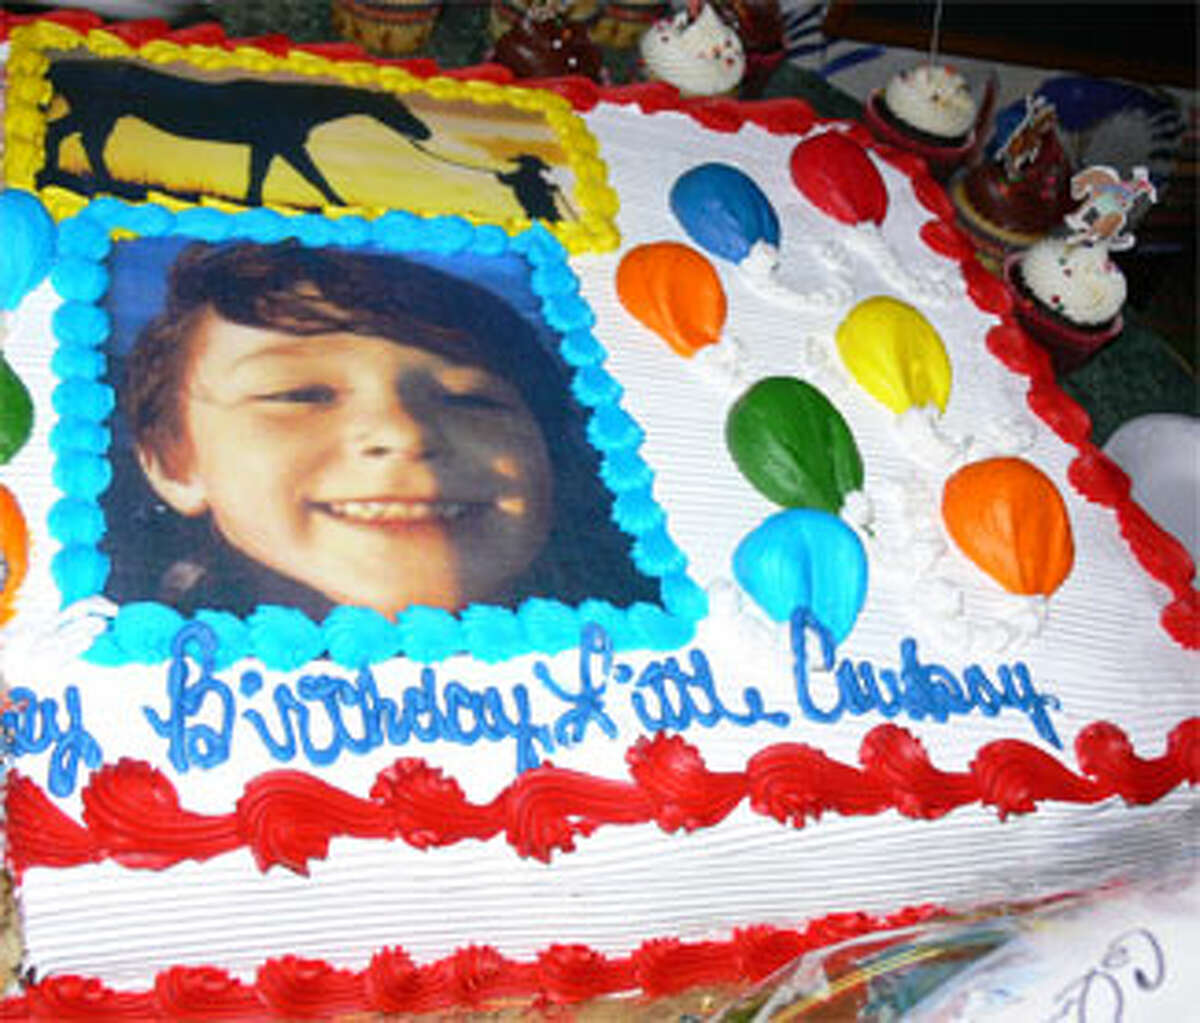 A birthday cake for the late Jesse Lewis at the 2013 SHS '81 fund-raising event with the message,